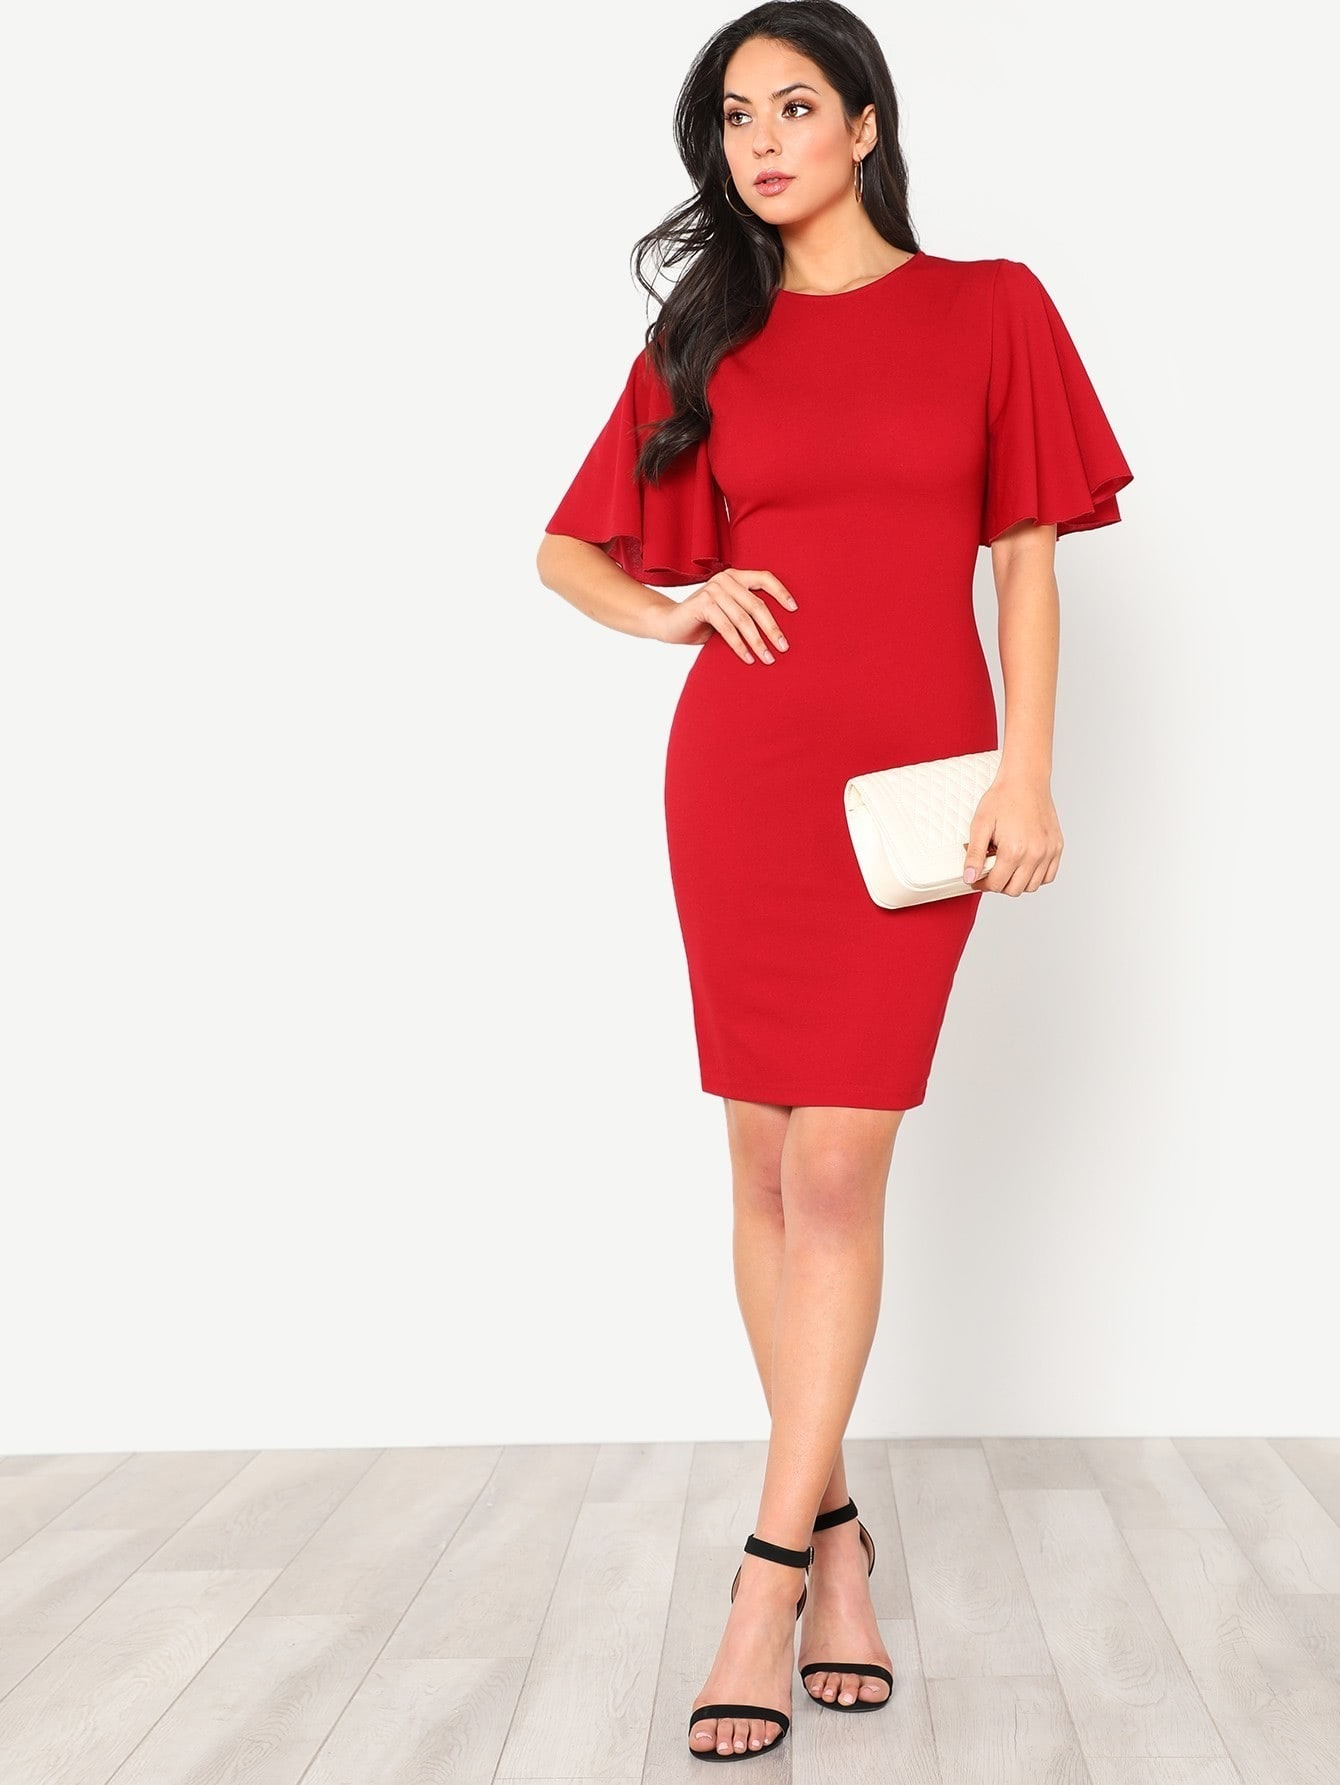 Exaggerate Bell Sleeve Pencil Dress exaggerate bell sleeve buttoned keyhole dress